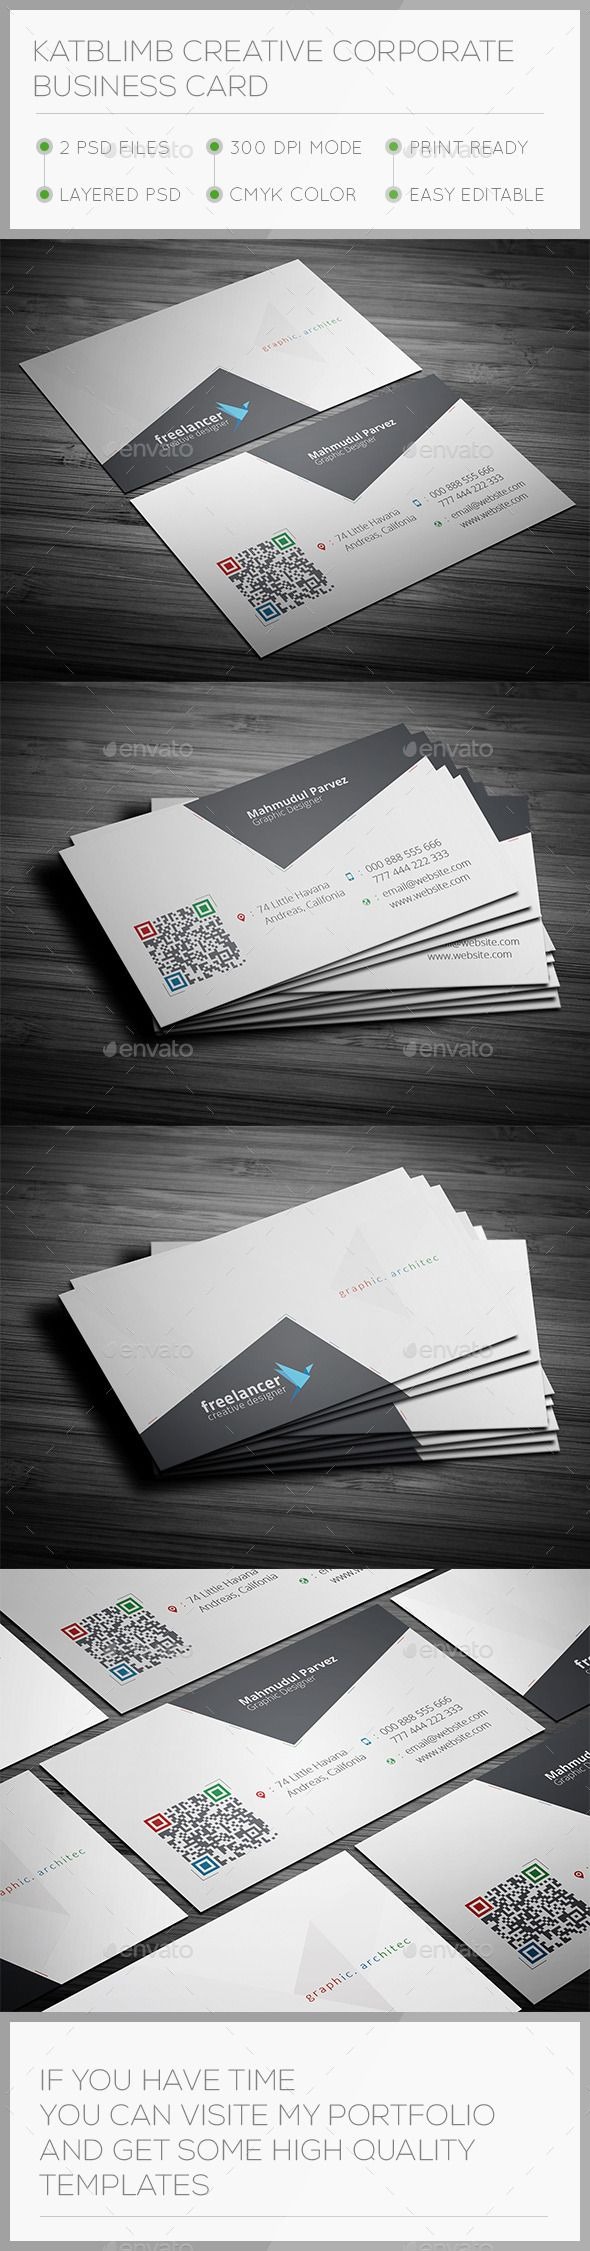 If you need a QR code for this card, check out http://tagmyprint.com?src=pinteresttag